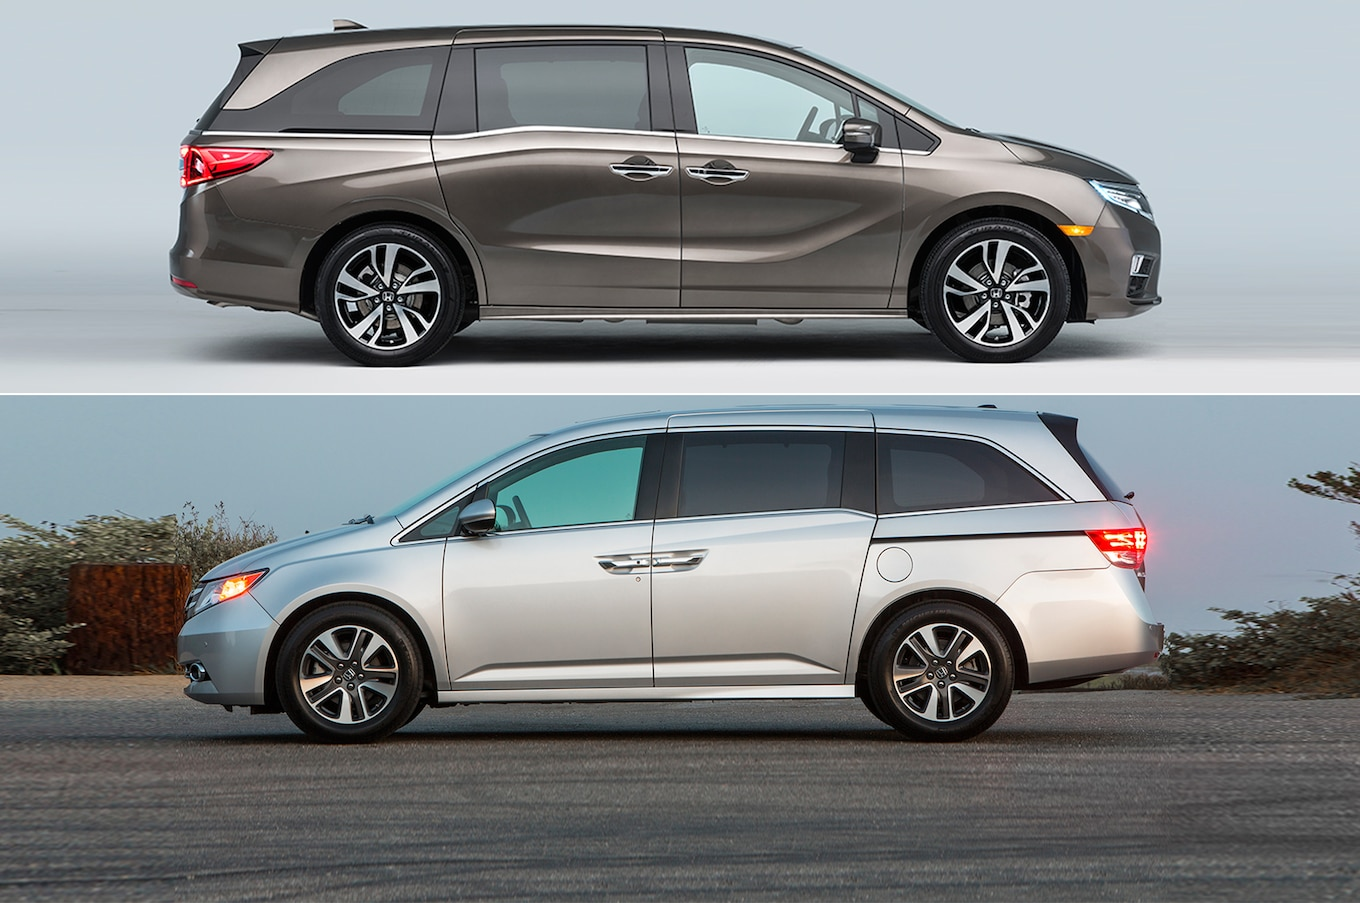 hight resolution of 2017 honda odyssey 2017 honda odyssey vs 2018 honda odyssey buy now or wait